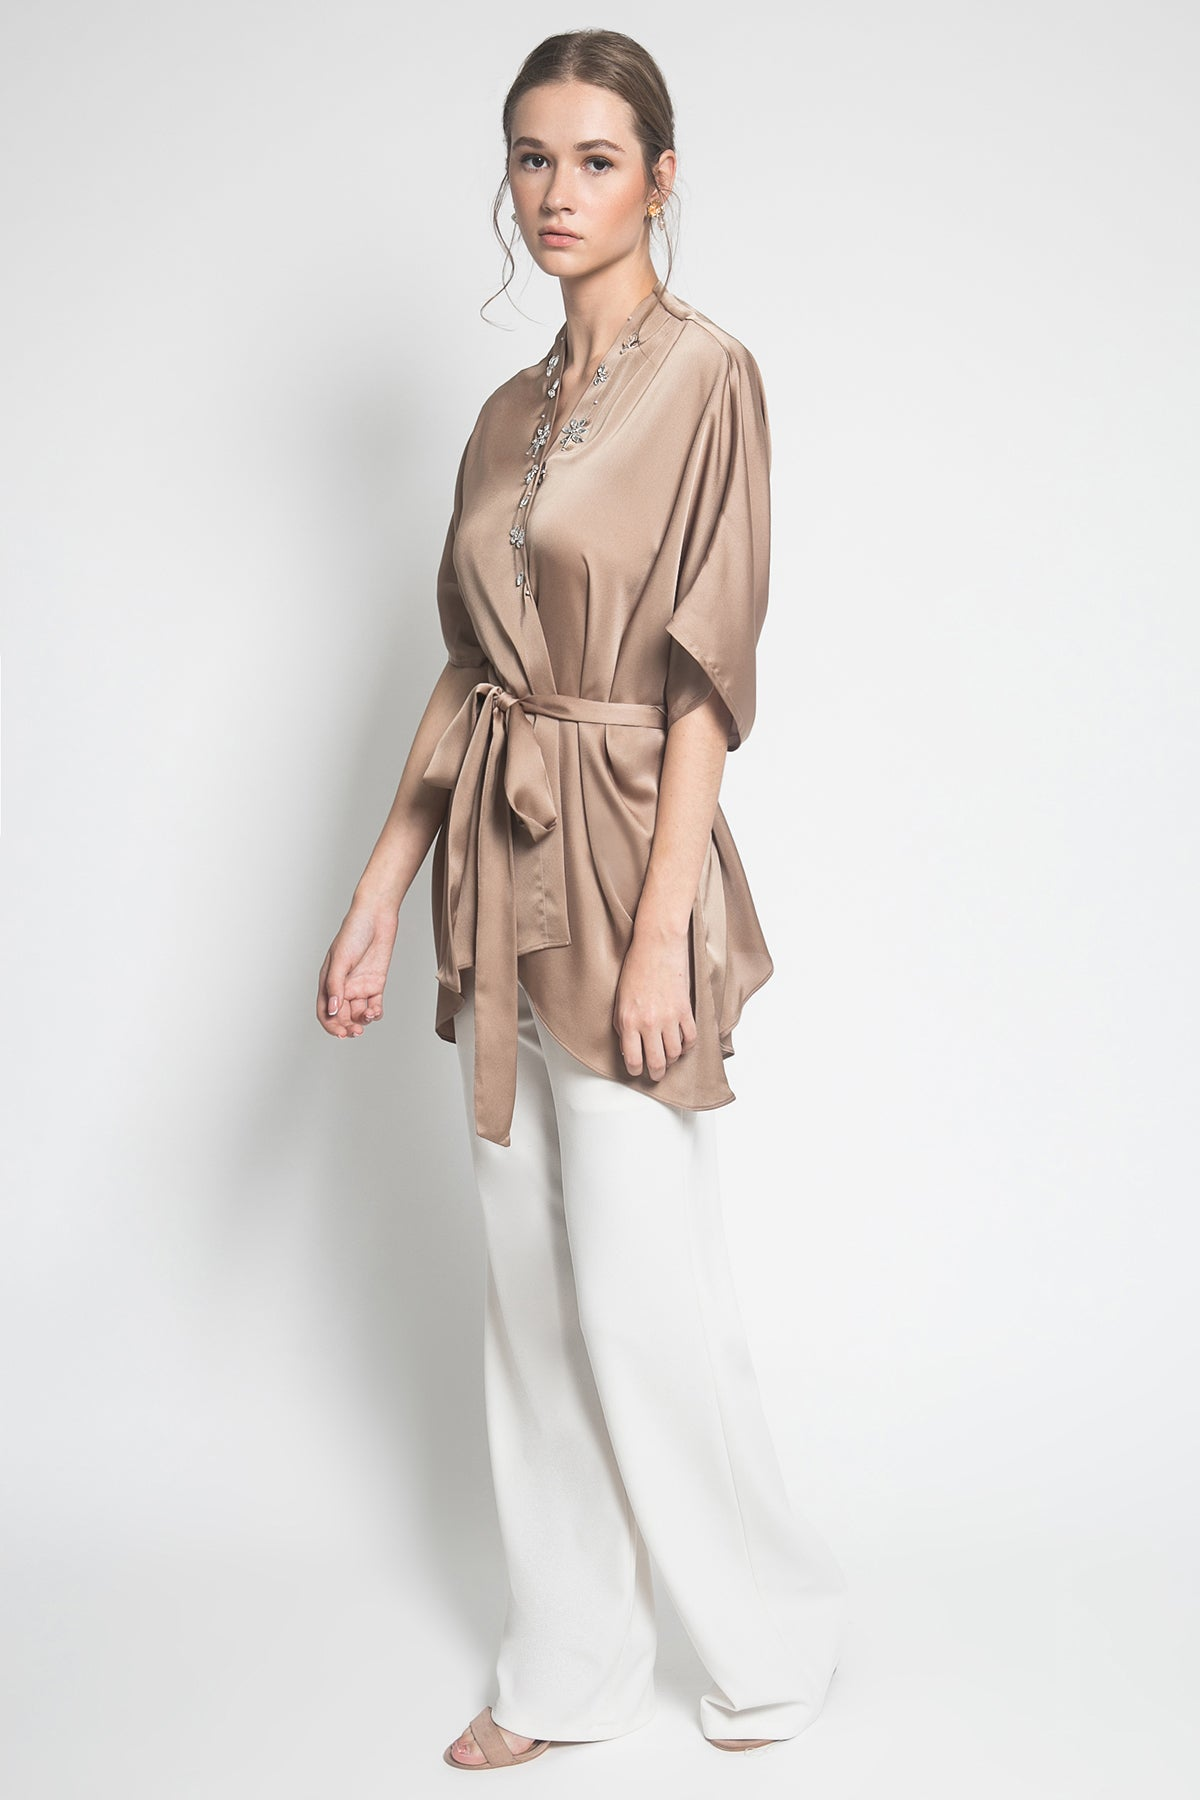 Embara Kalla Outer in Brown